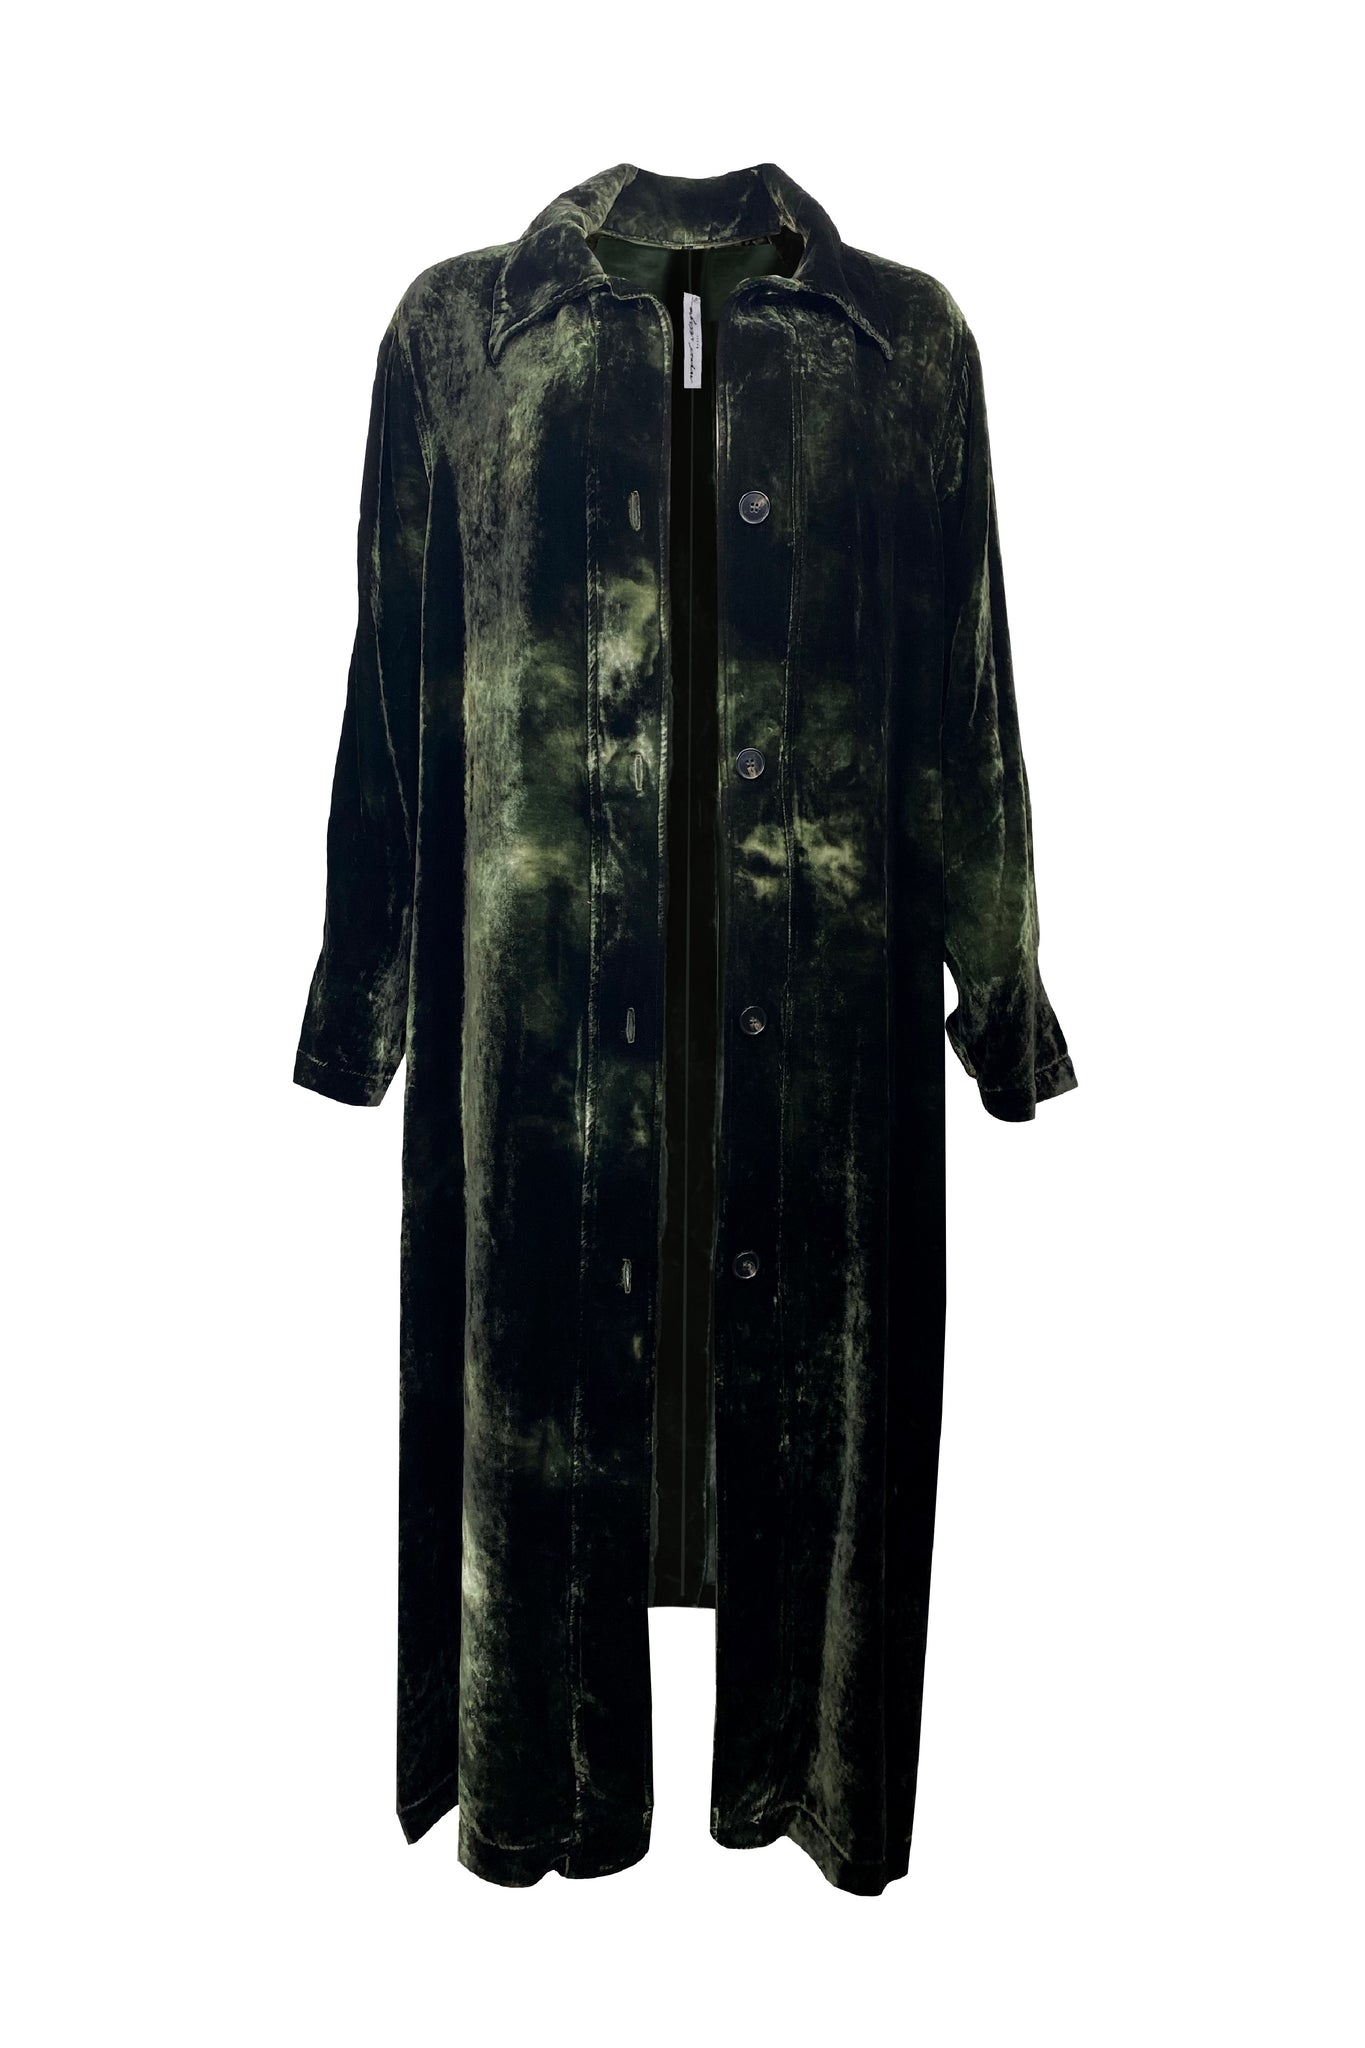 Raquel Allegra House Party Trench - Moss Cloud